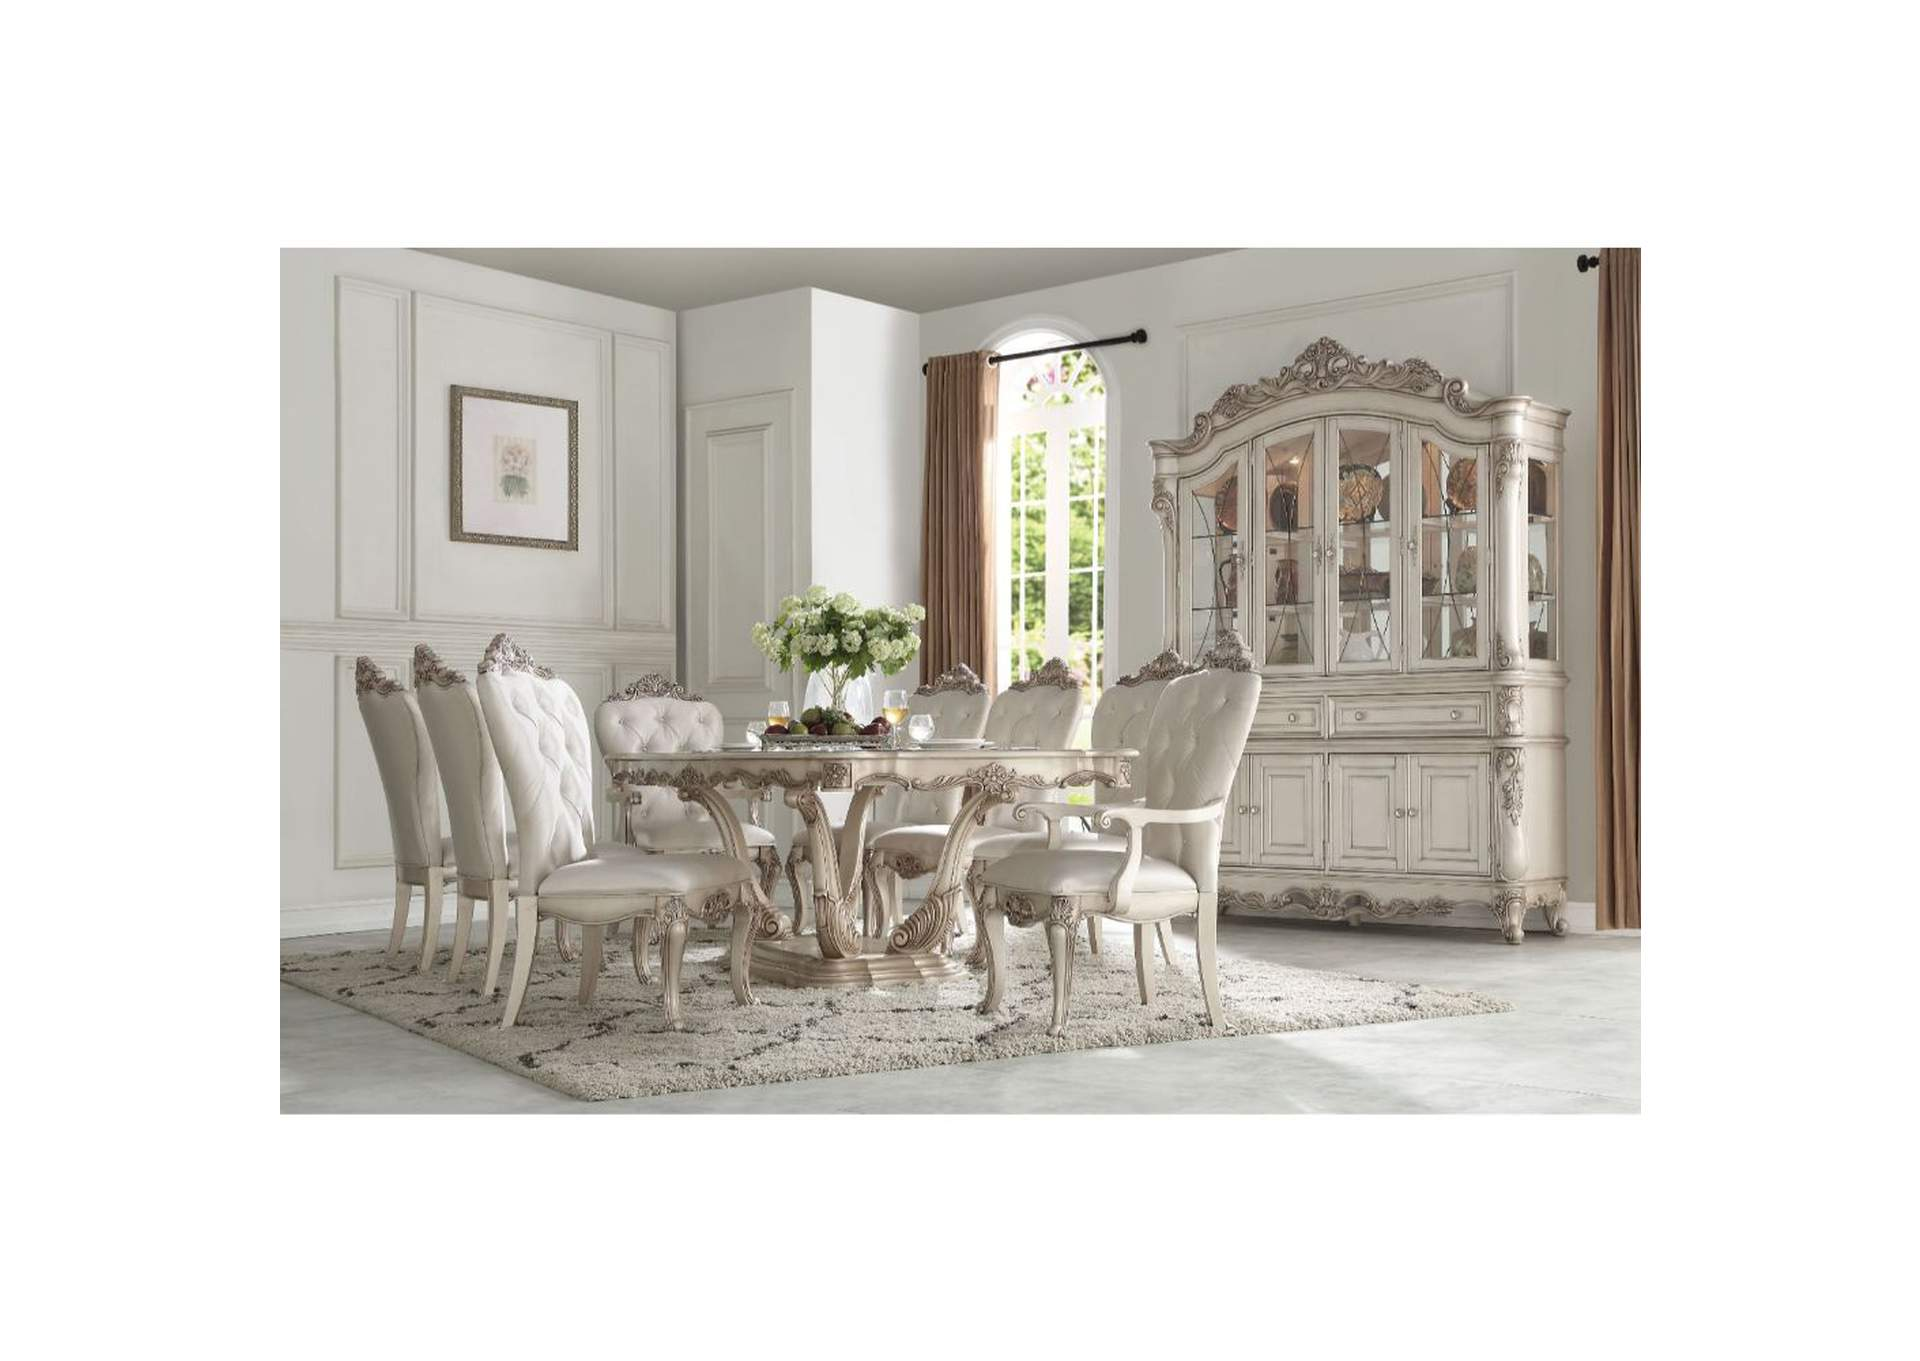 Antique White Dining Chairs Goree S Furniture Opelika Al Gorsedd Antique White Dining Table